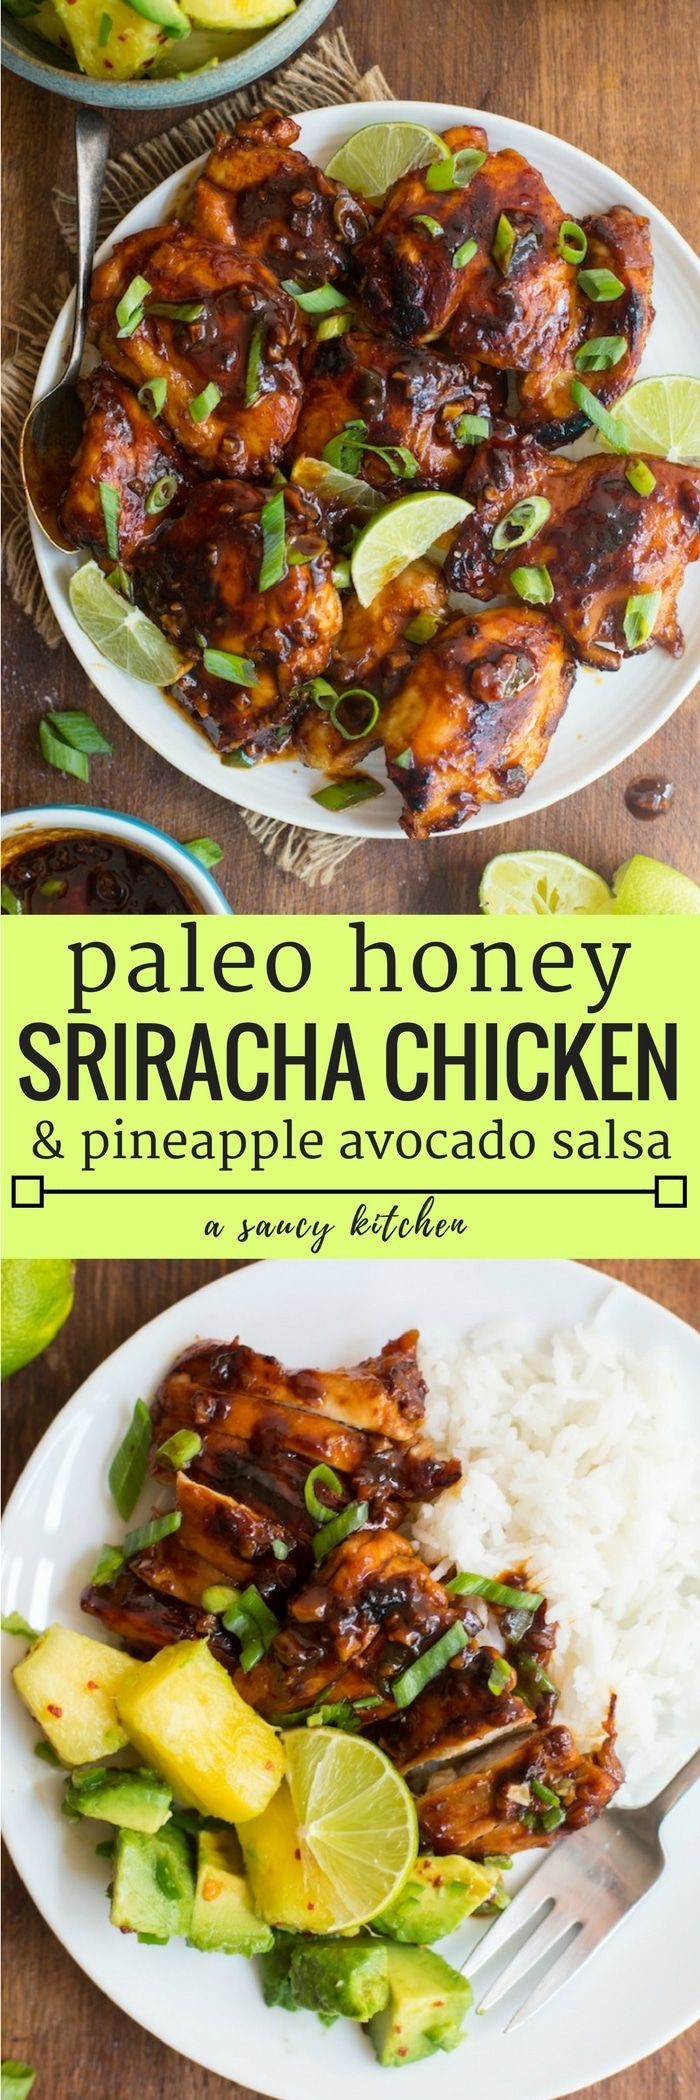 Garlicky Honey Sriracha Chicken - sticky, spicy chicken balanced out with a sweet pineapple avocado salsa | Gluten Free + Paleo